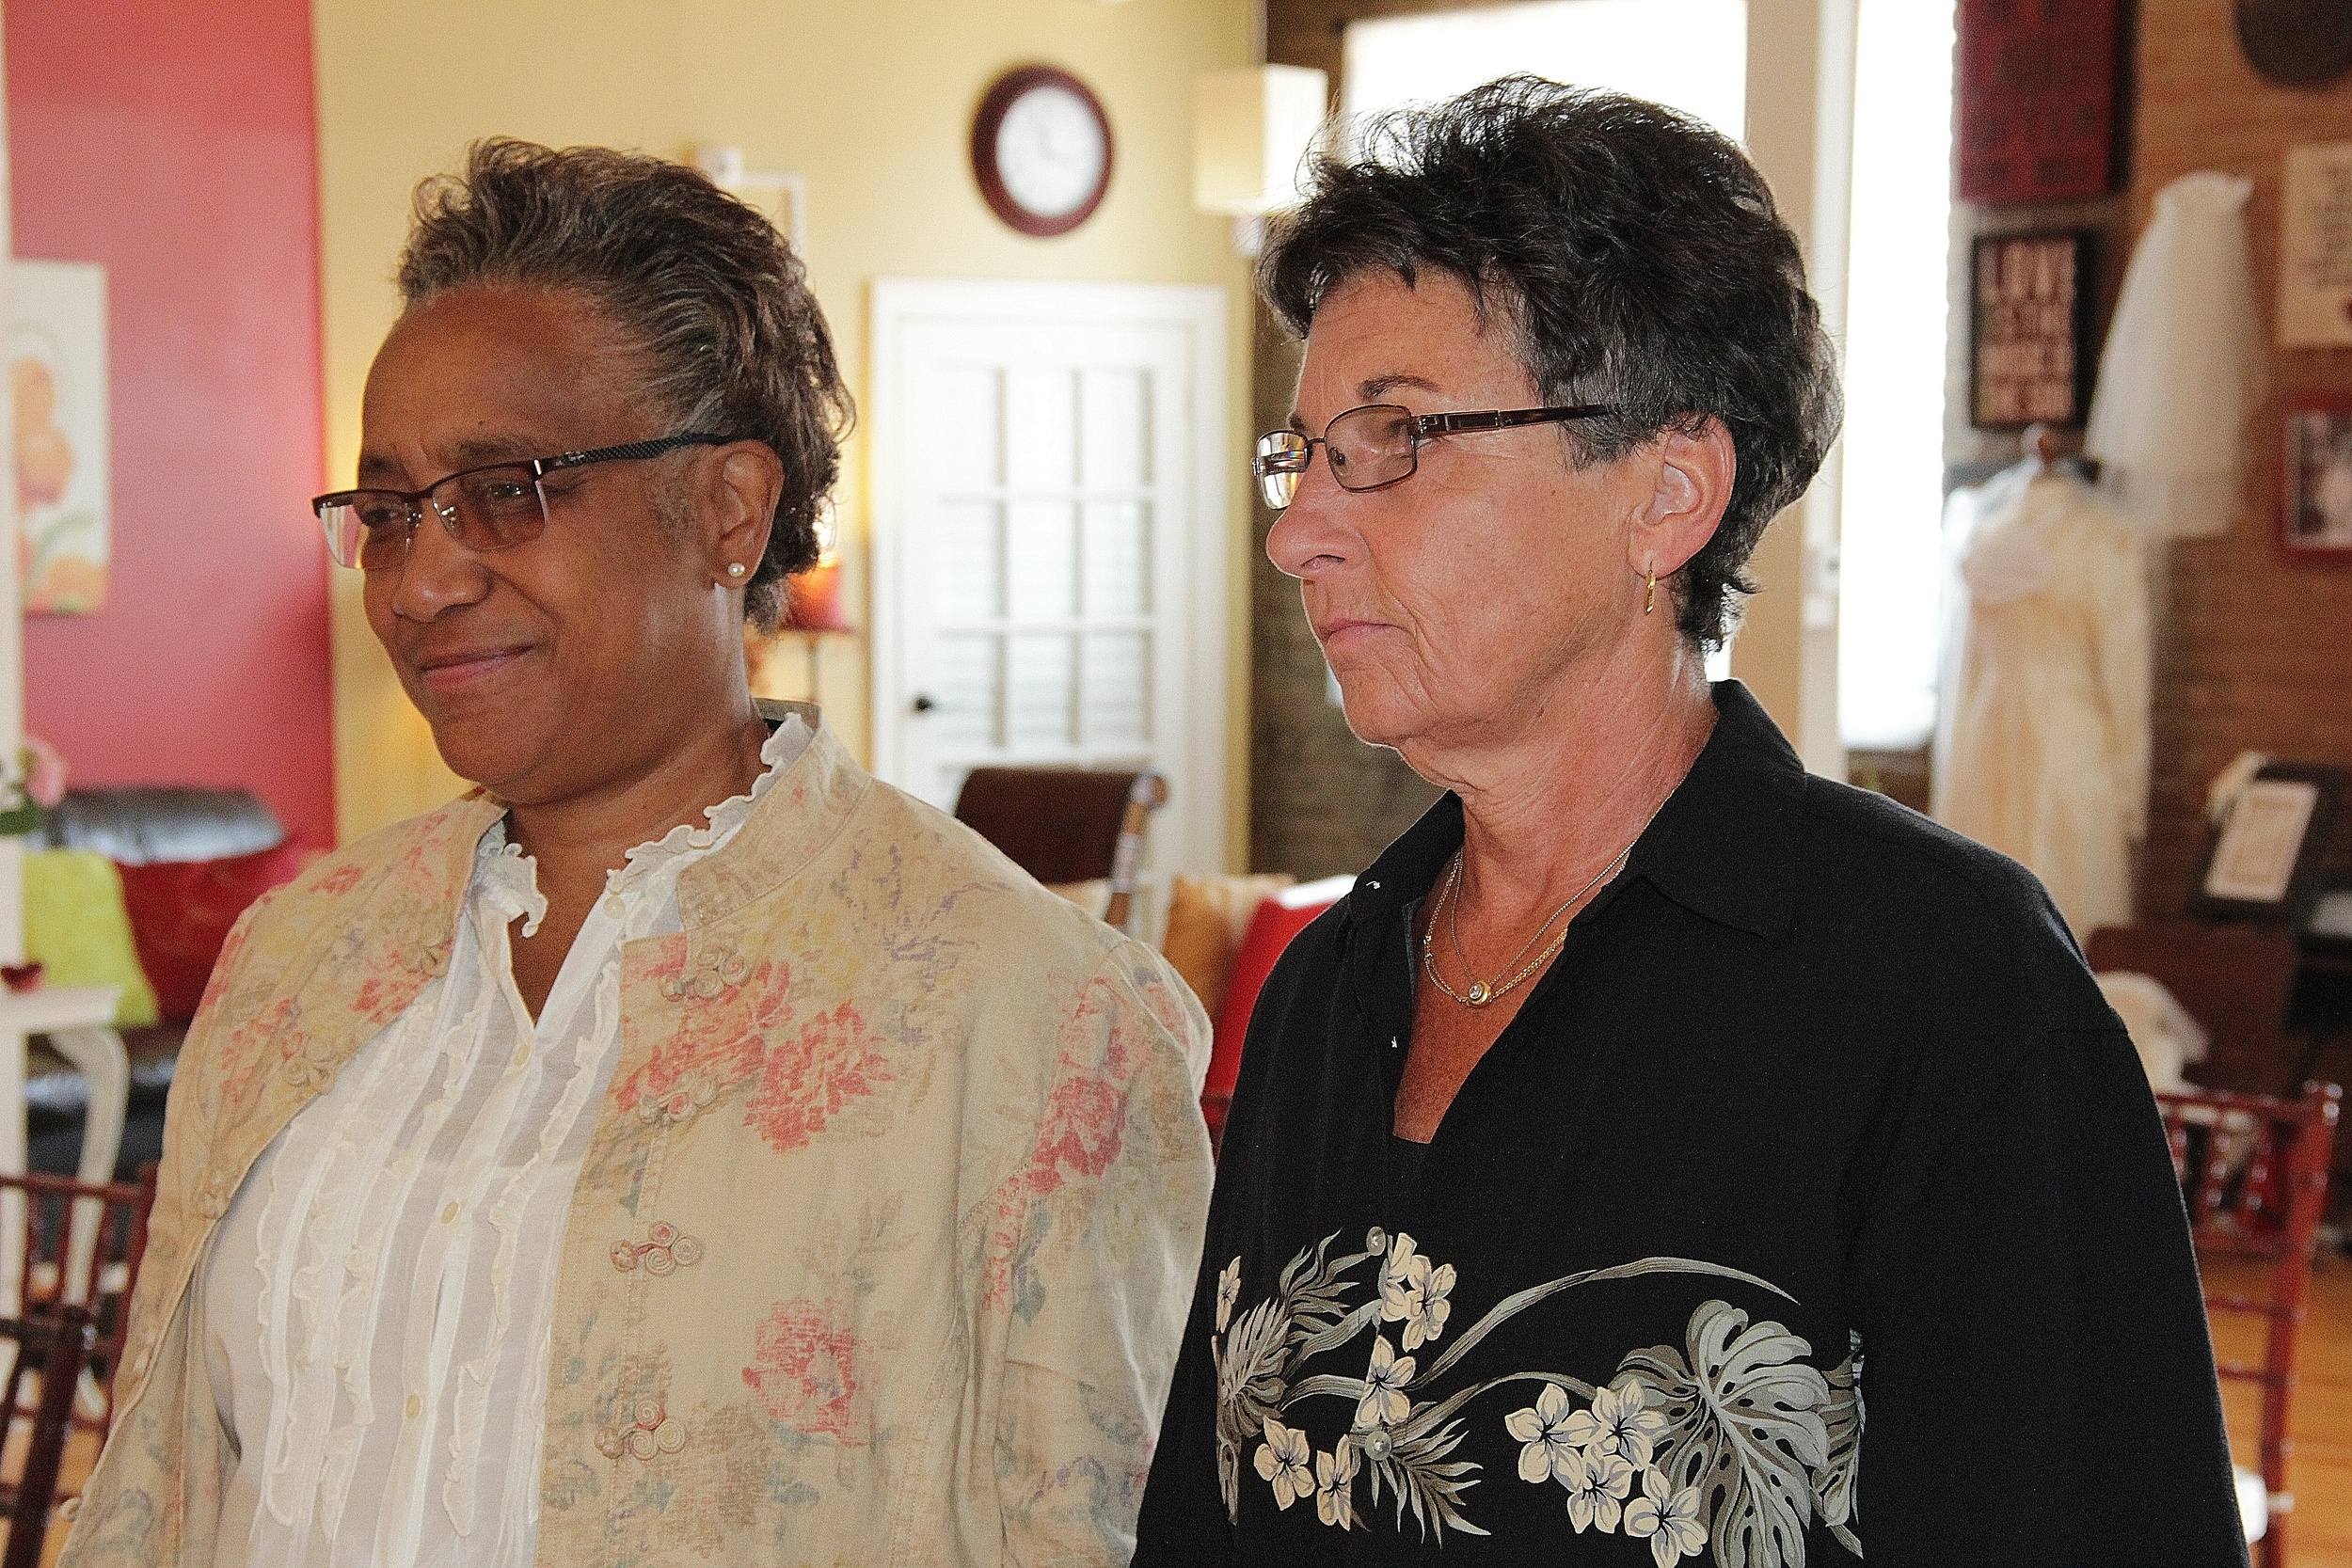 wedding  7-11-2014 11am  donna and sallyann 033.jpg